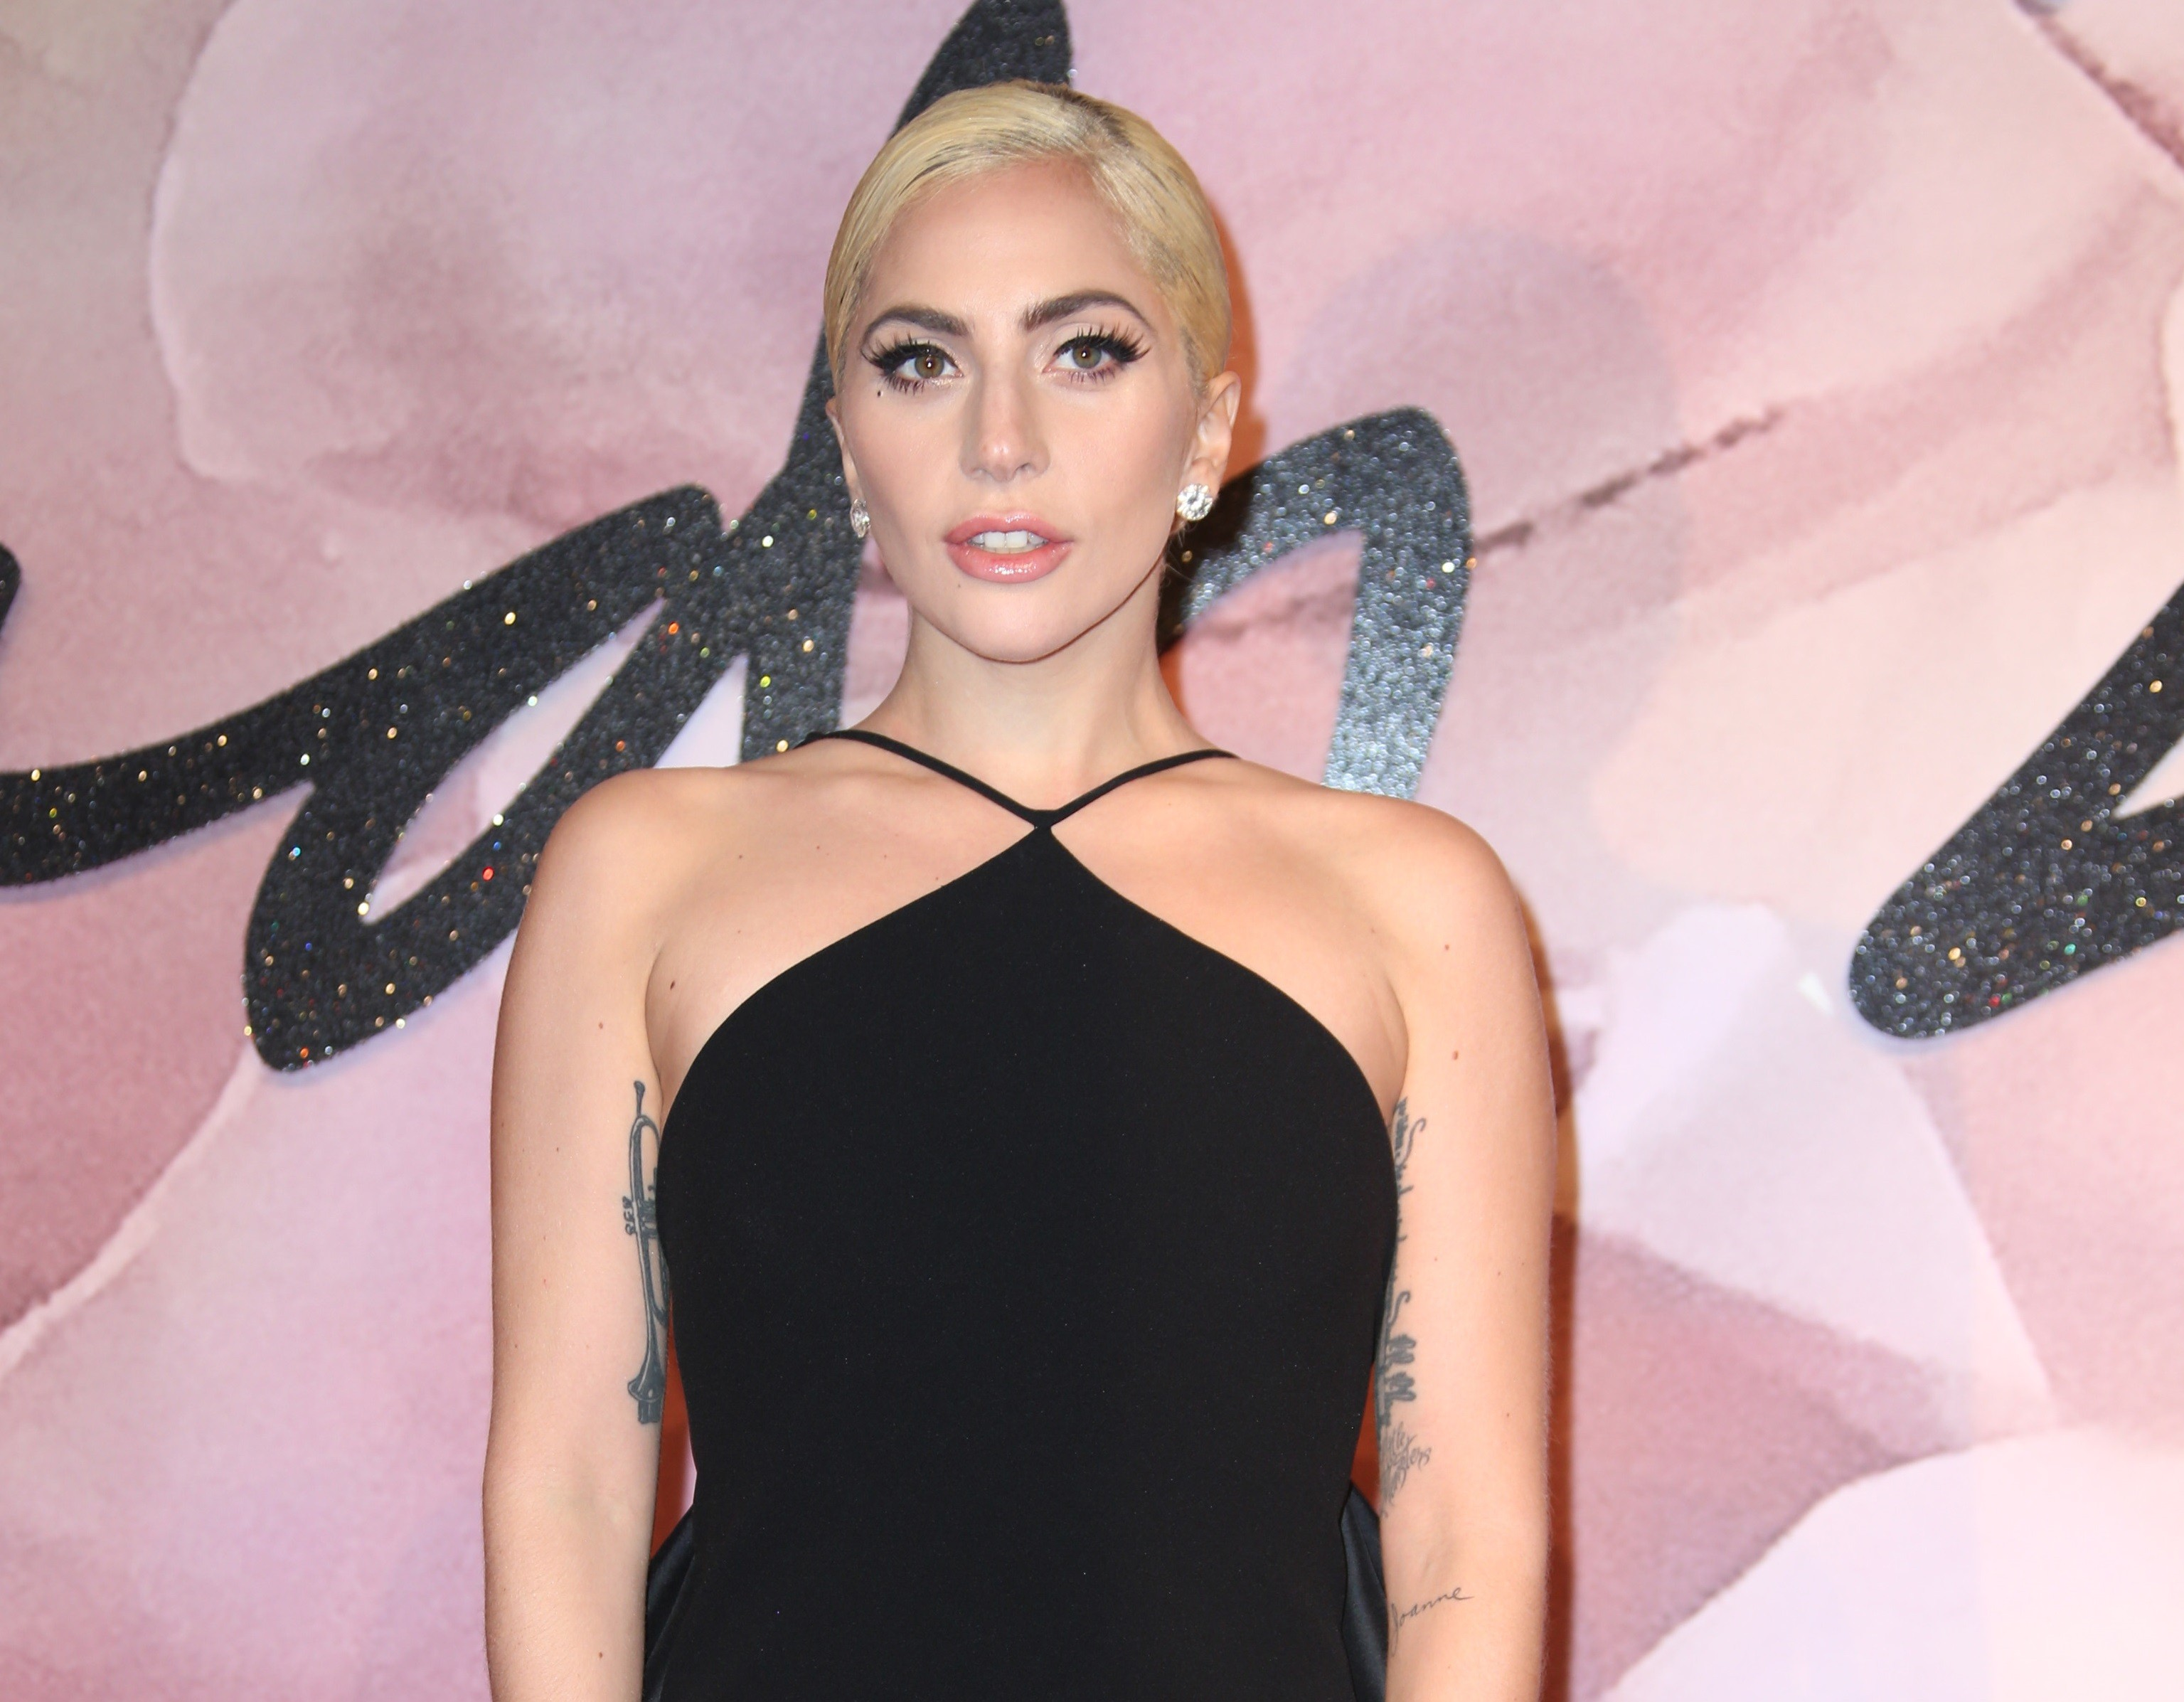 Lady Gaga revela que sofre de estresse ps-traumtico (Foto: Associated Press)